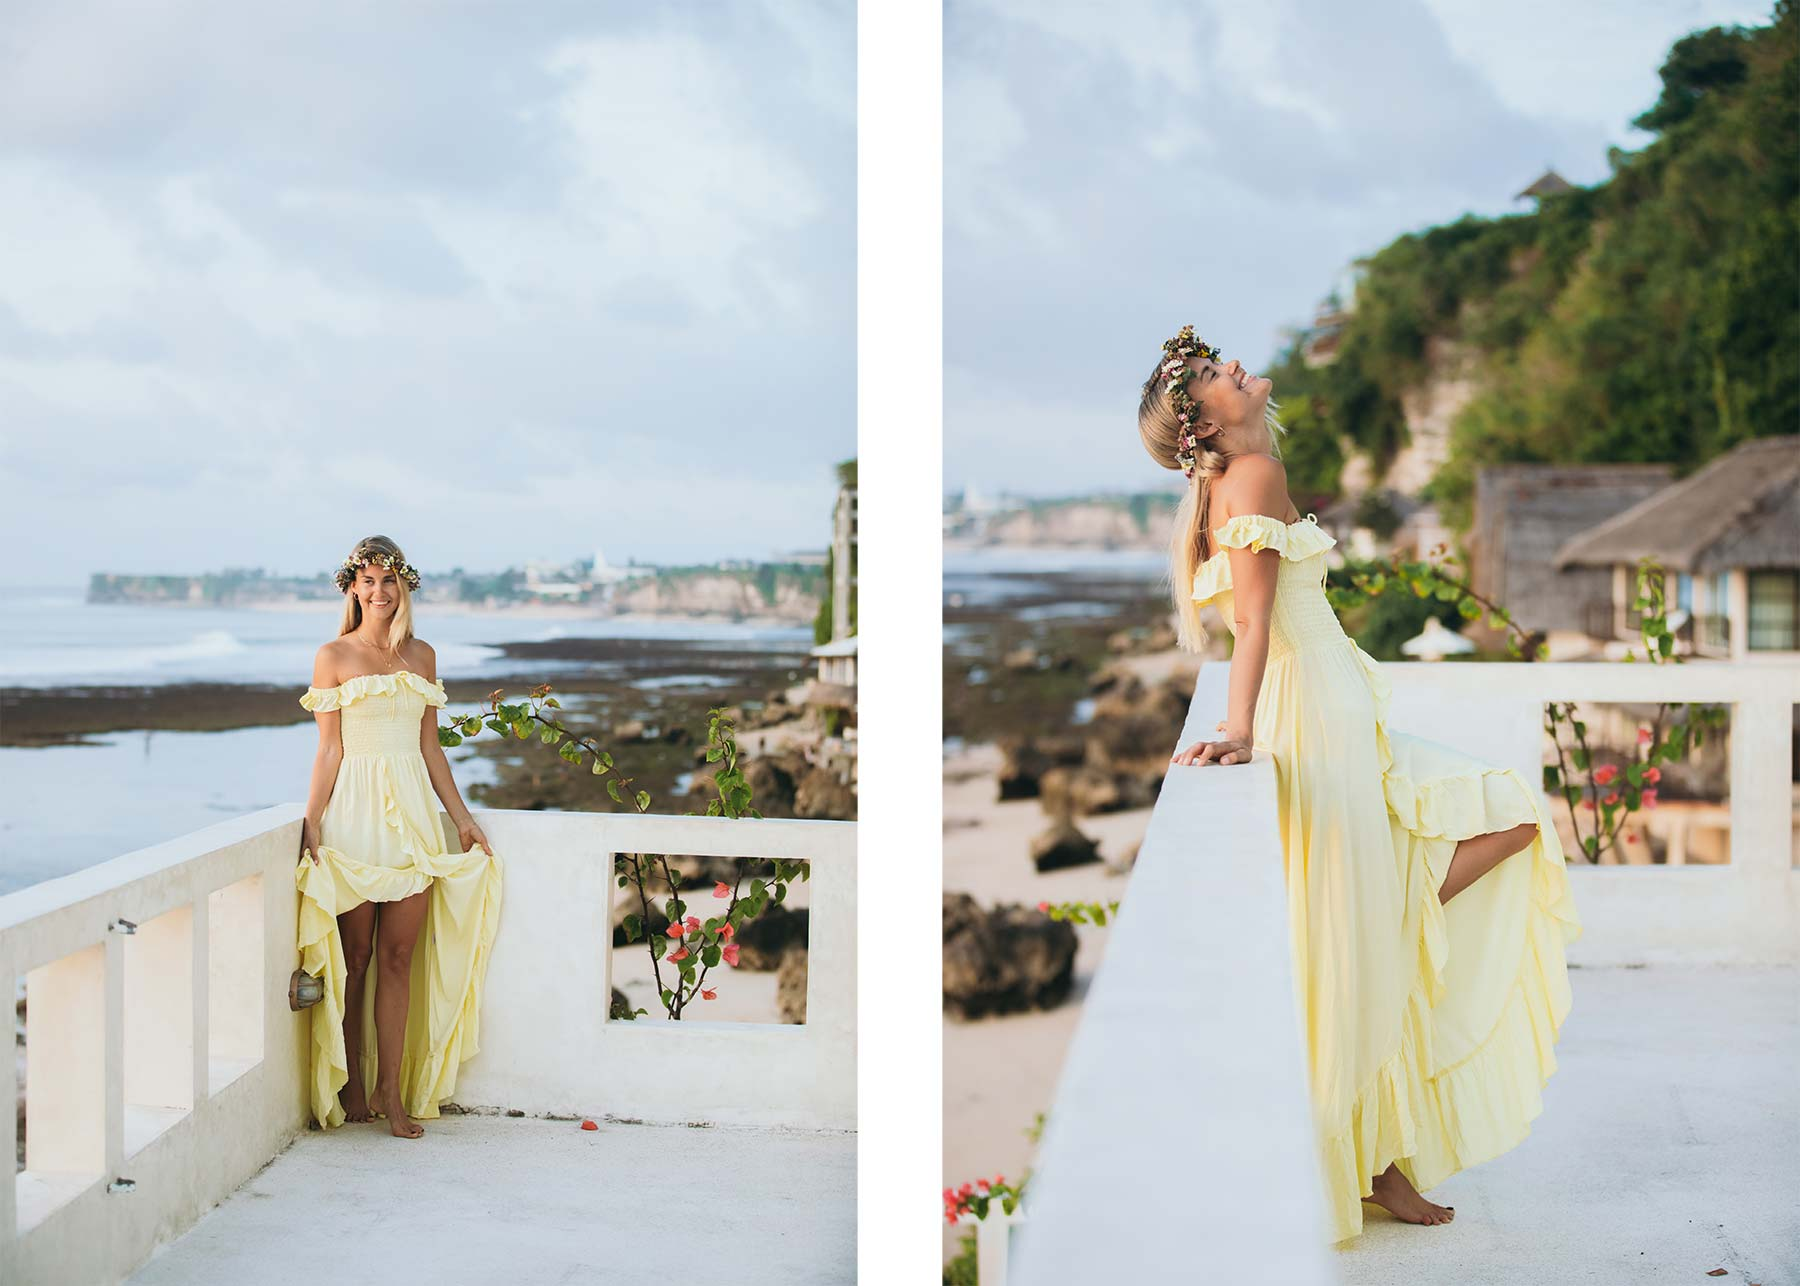 ROVE_MAJA_lemon_yellow_off-shoulder_flowy_maxi_dress